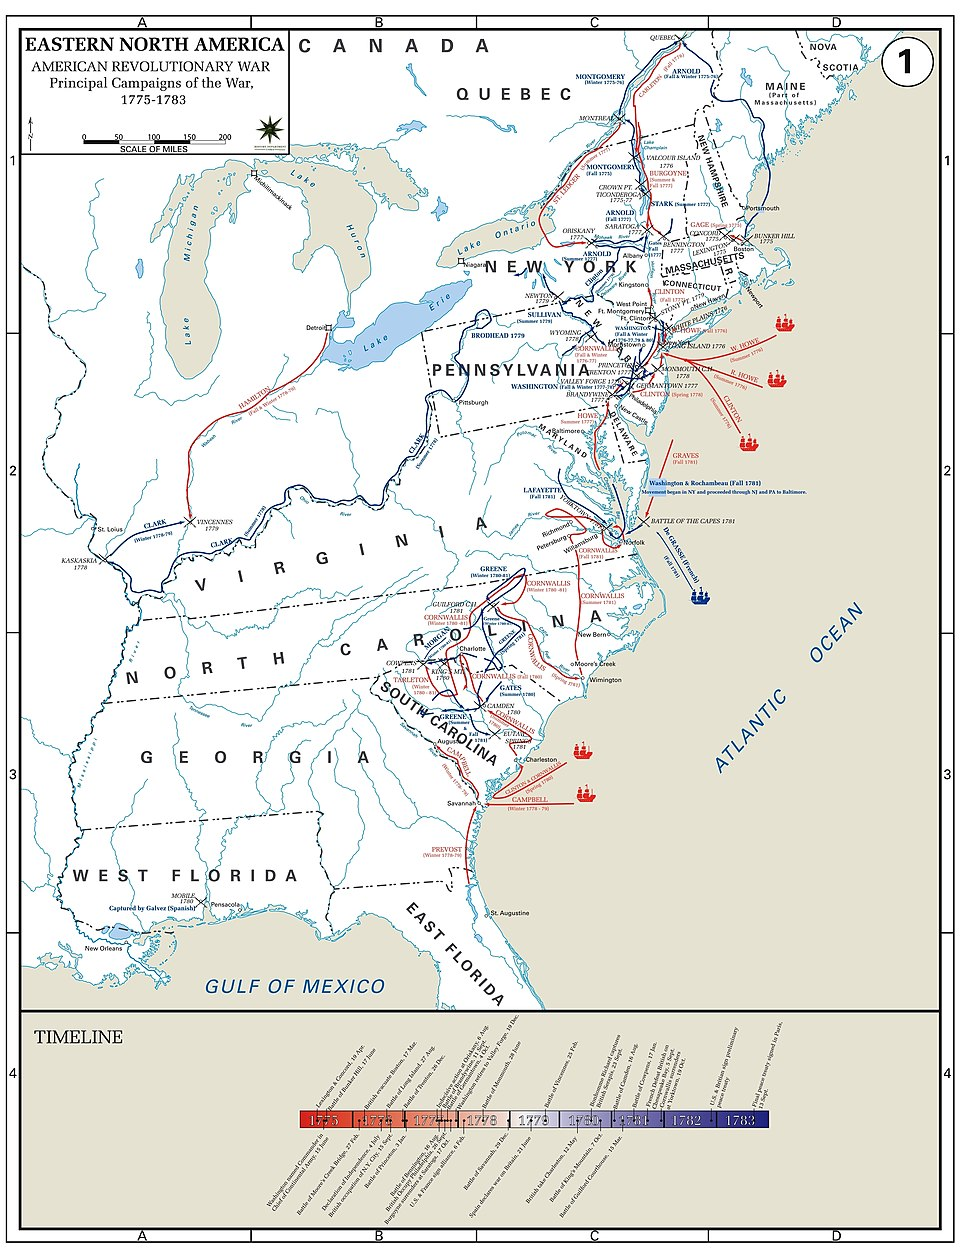 USMA01 Major Campaigns of the American Revolutionary War